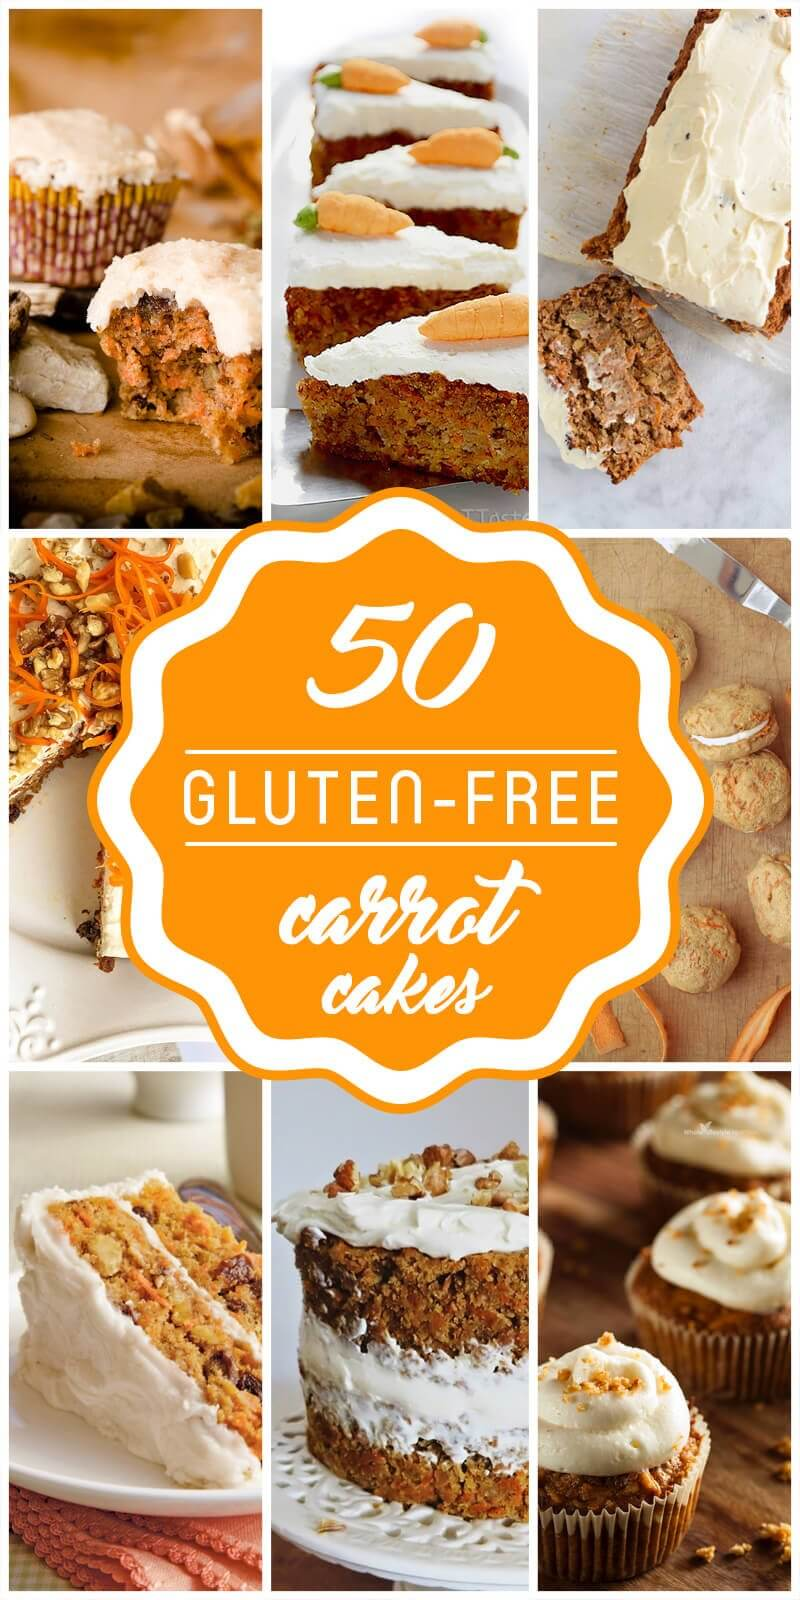 Gluten-Free Carrot Cakes